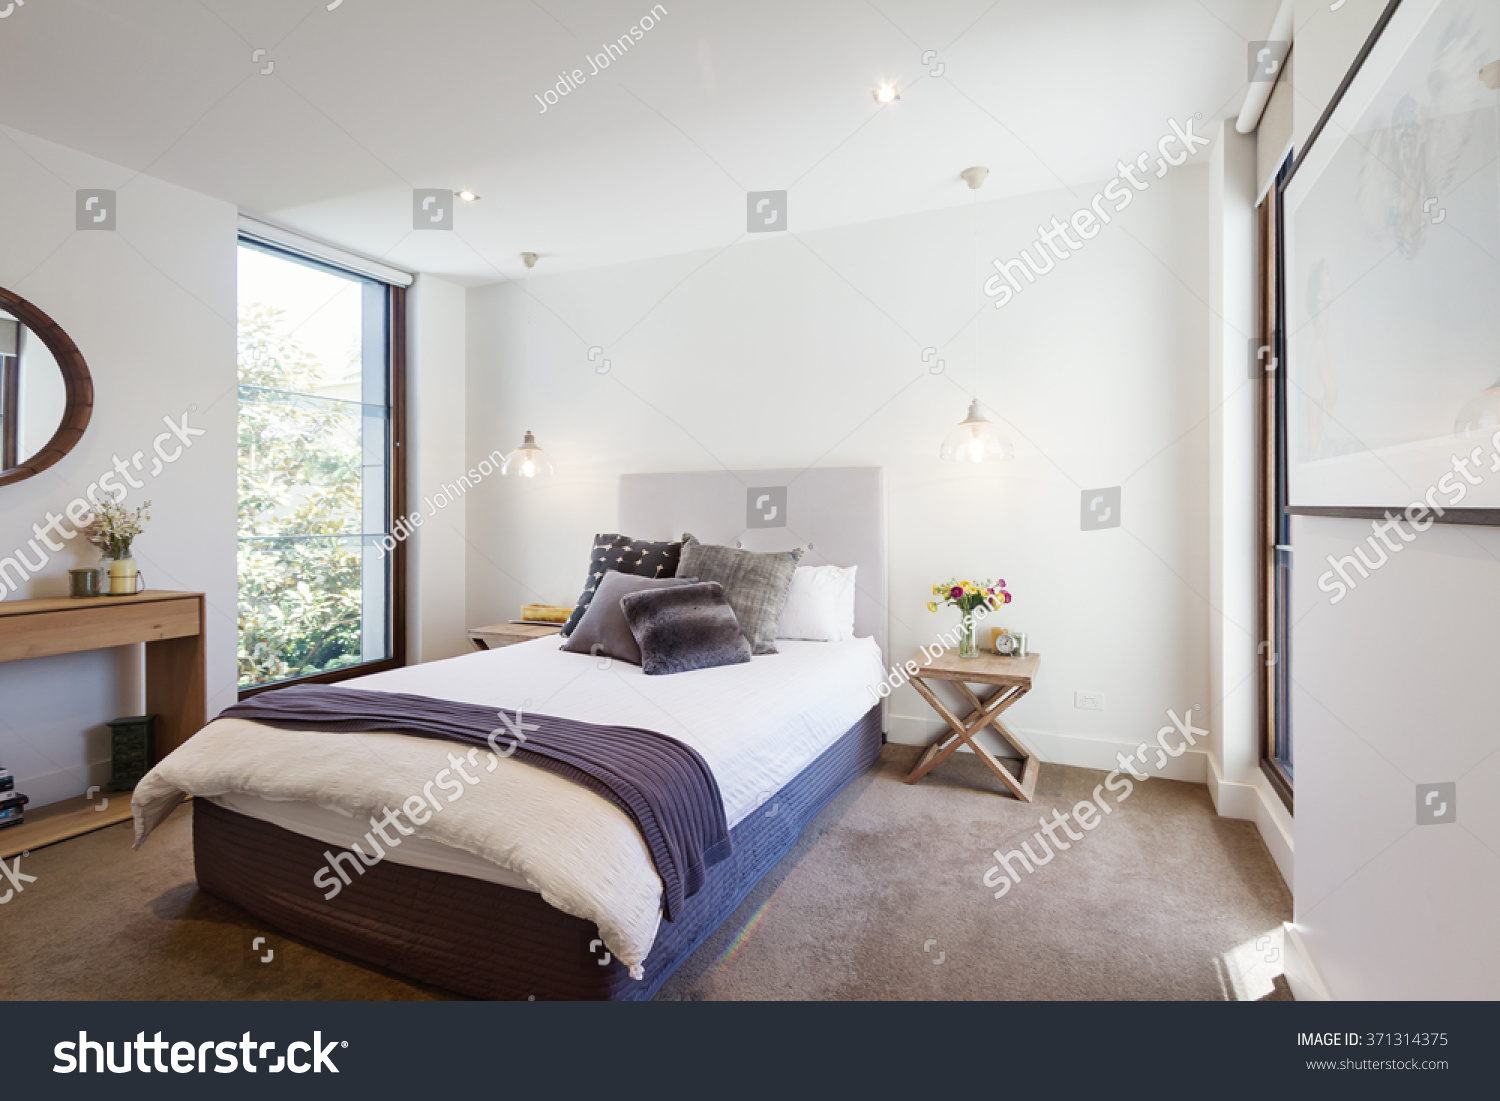 luxury interior designed bedroom with comfy pillows and throw rug and pendant lights